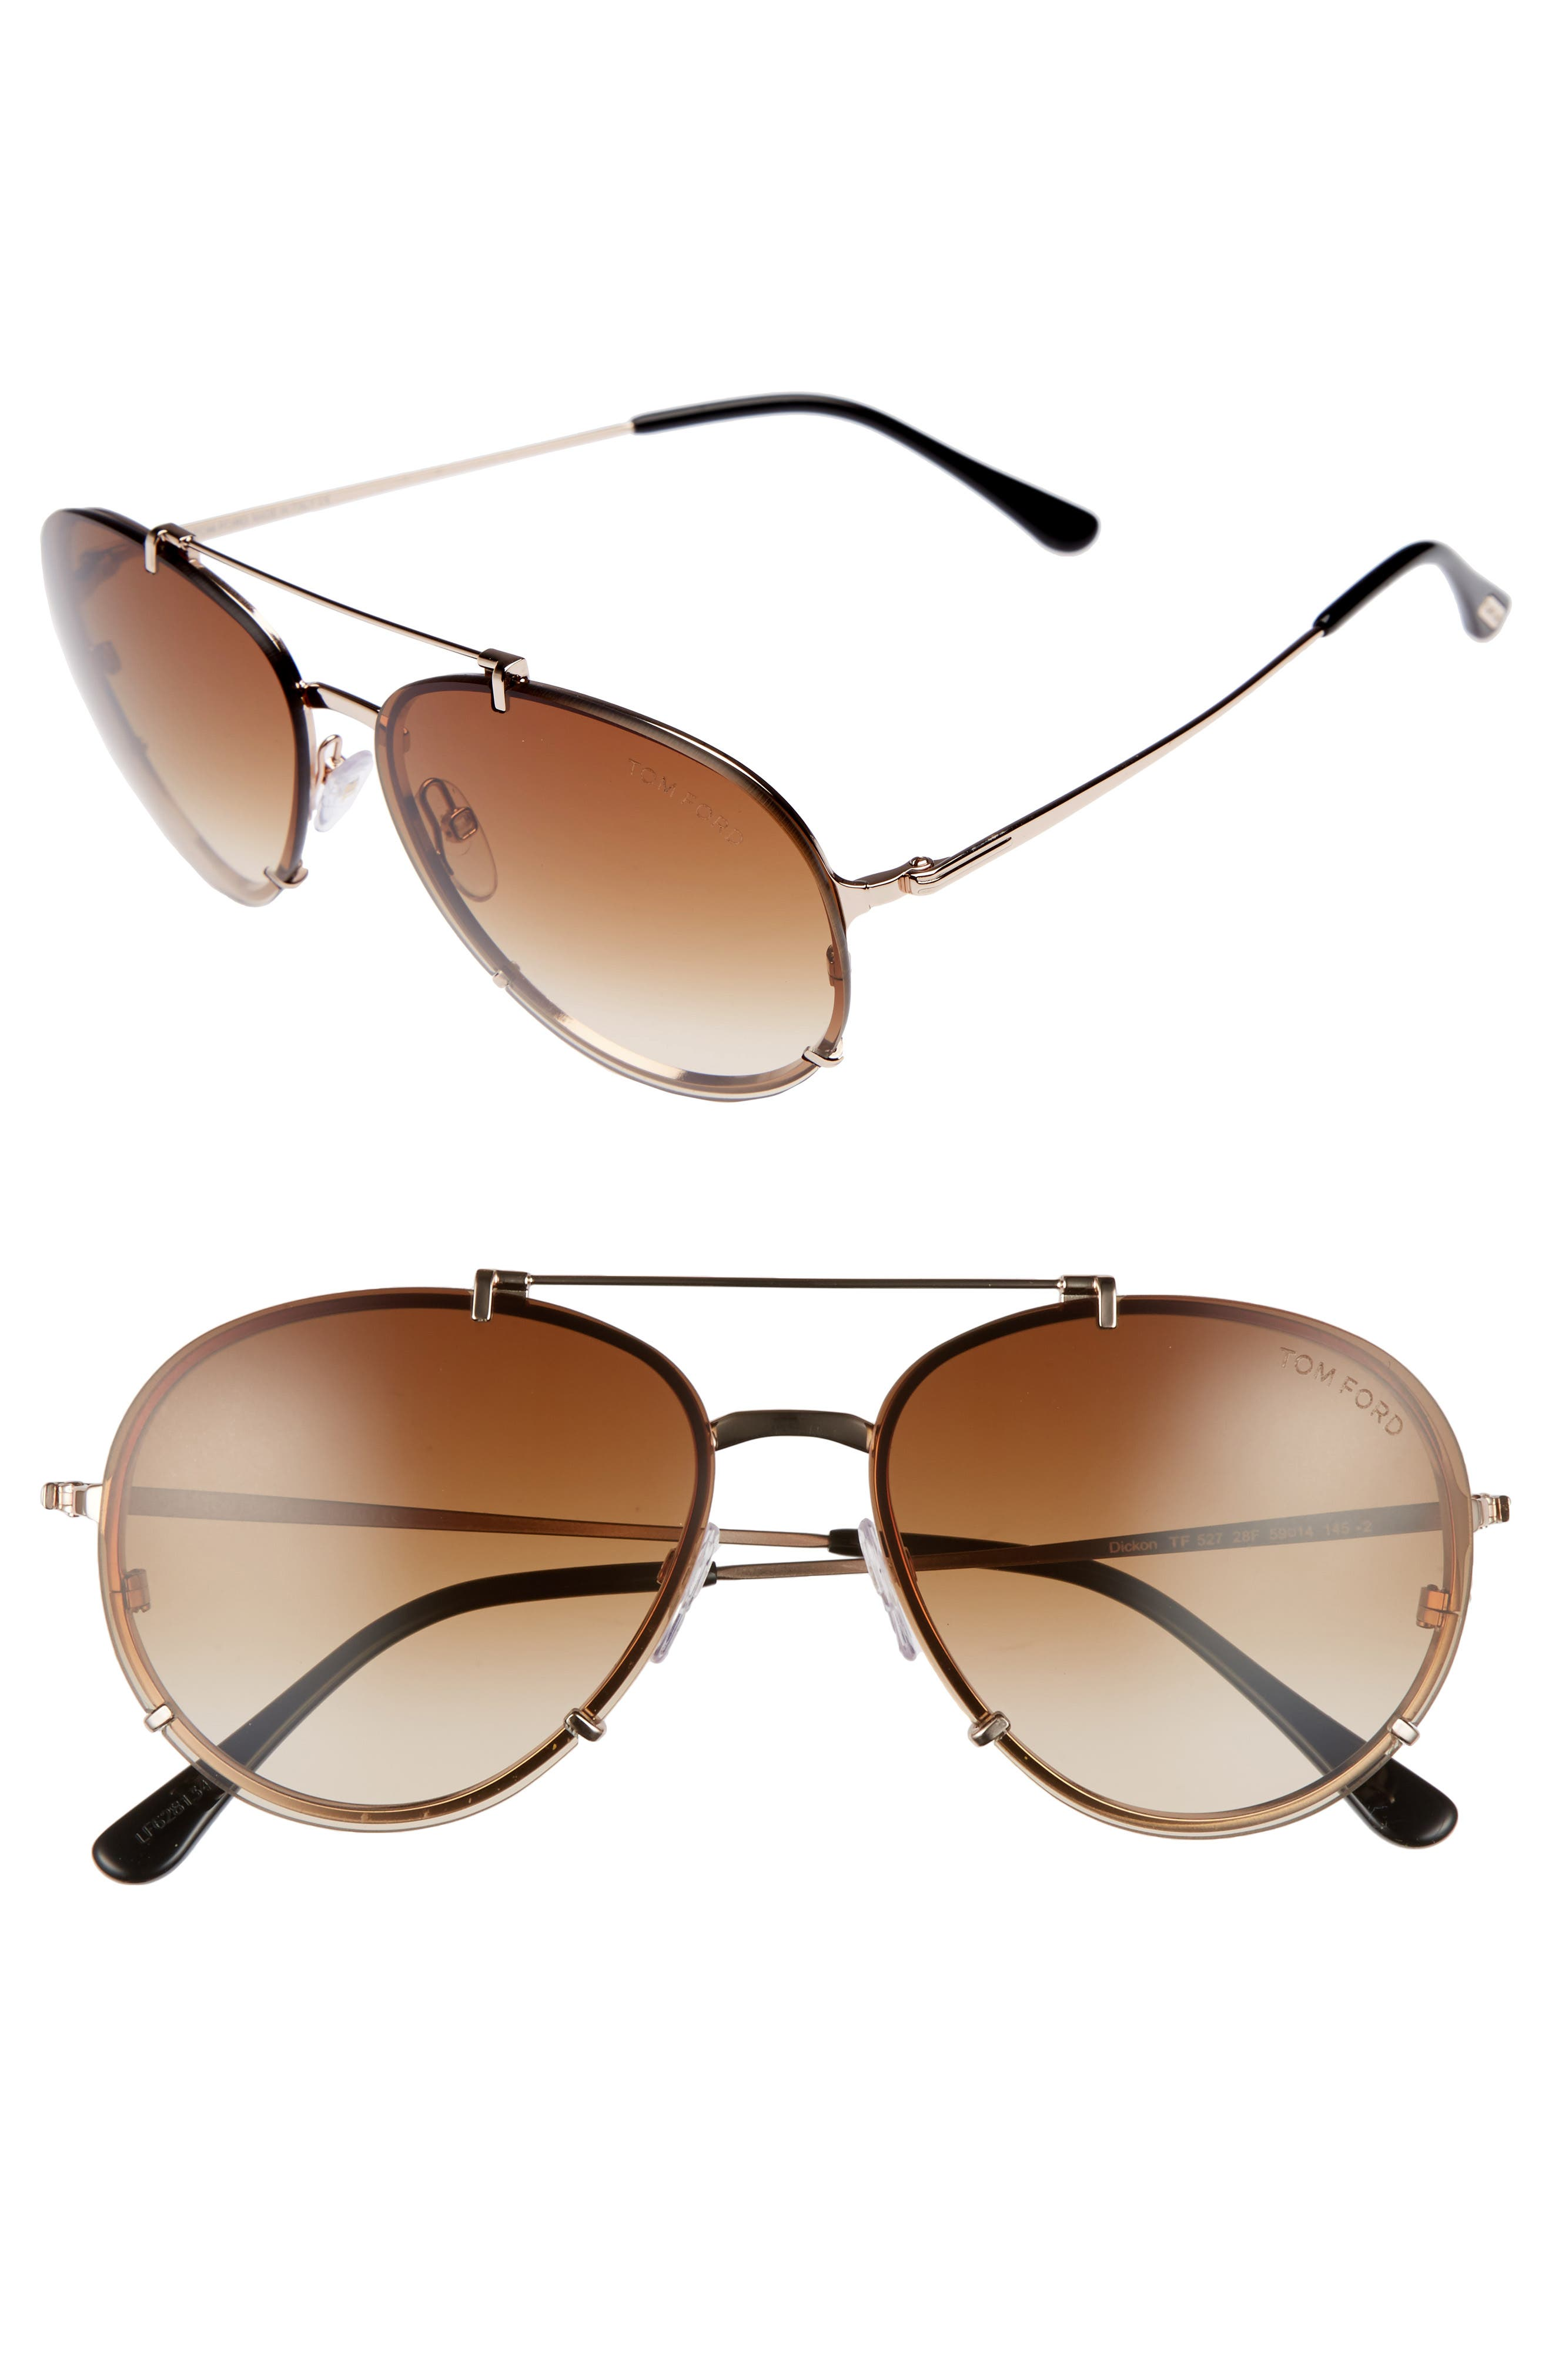 Dickon 59mm Aviator Sunglasses,                             Main thumbnail 1, color,                             ROSE GOLD/ BROWN